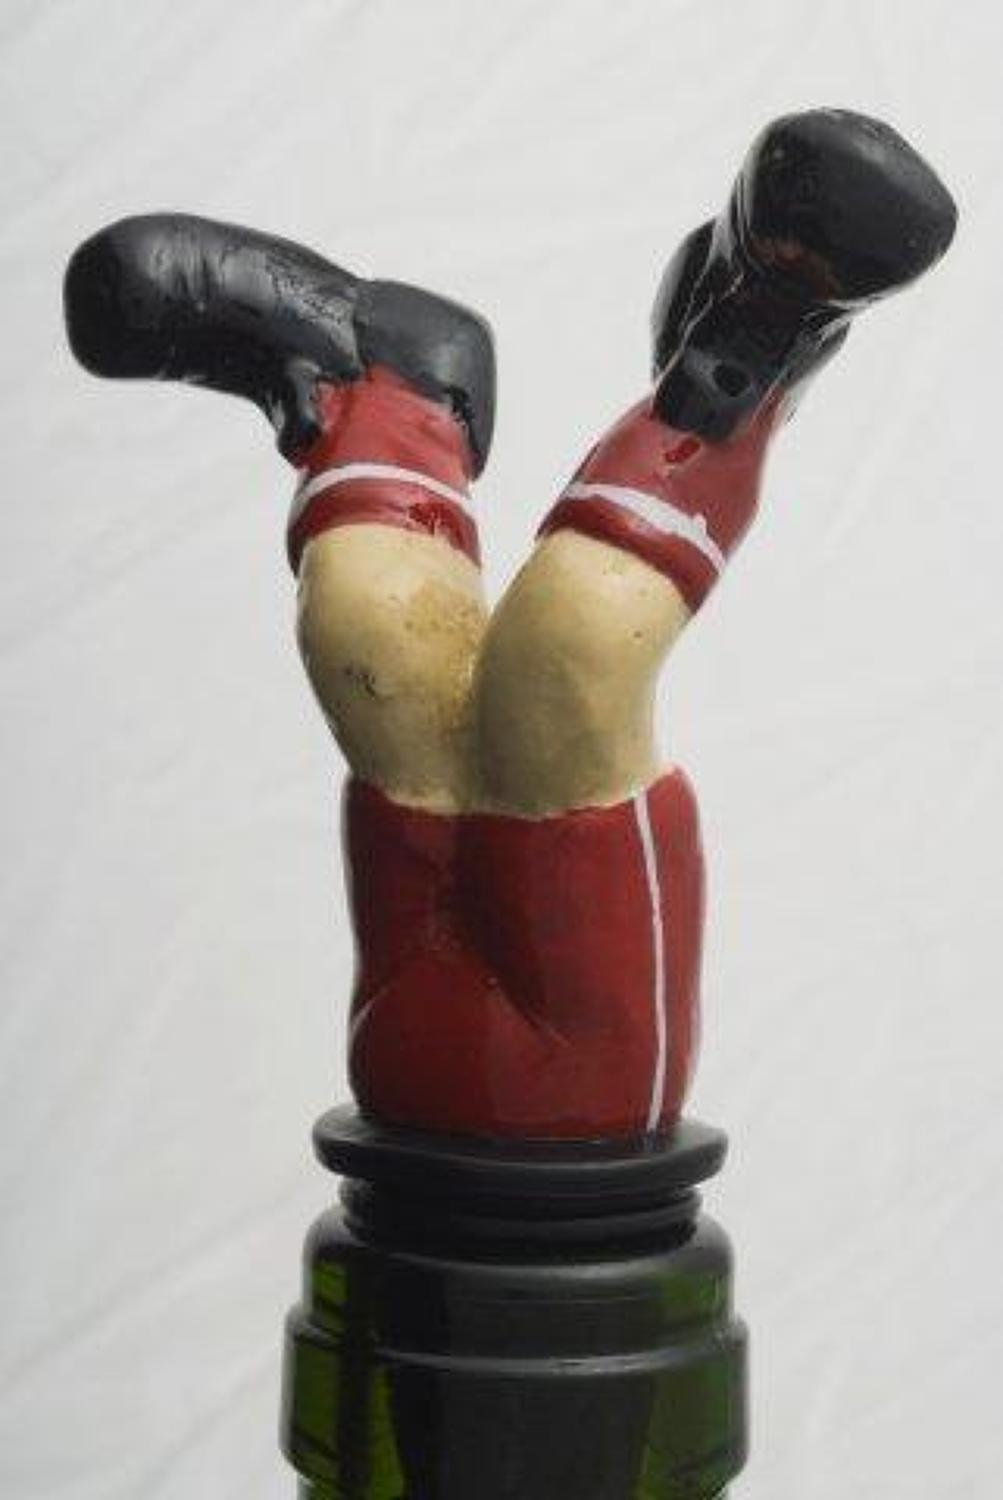 Football Boots bottle stopper